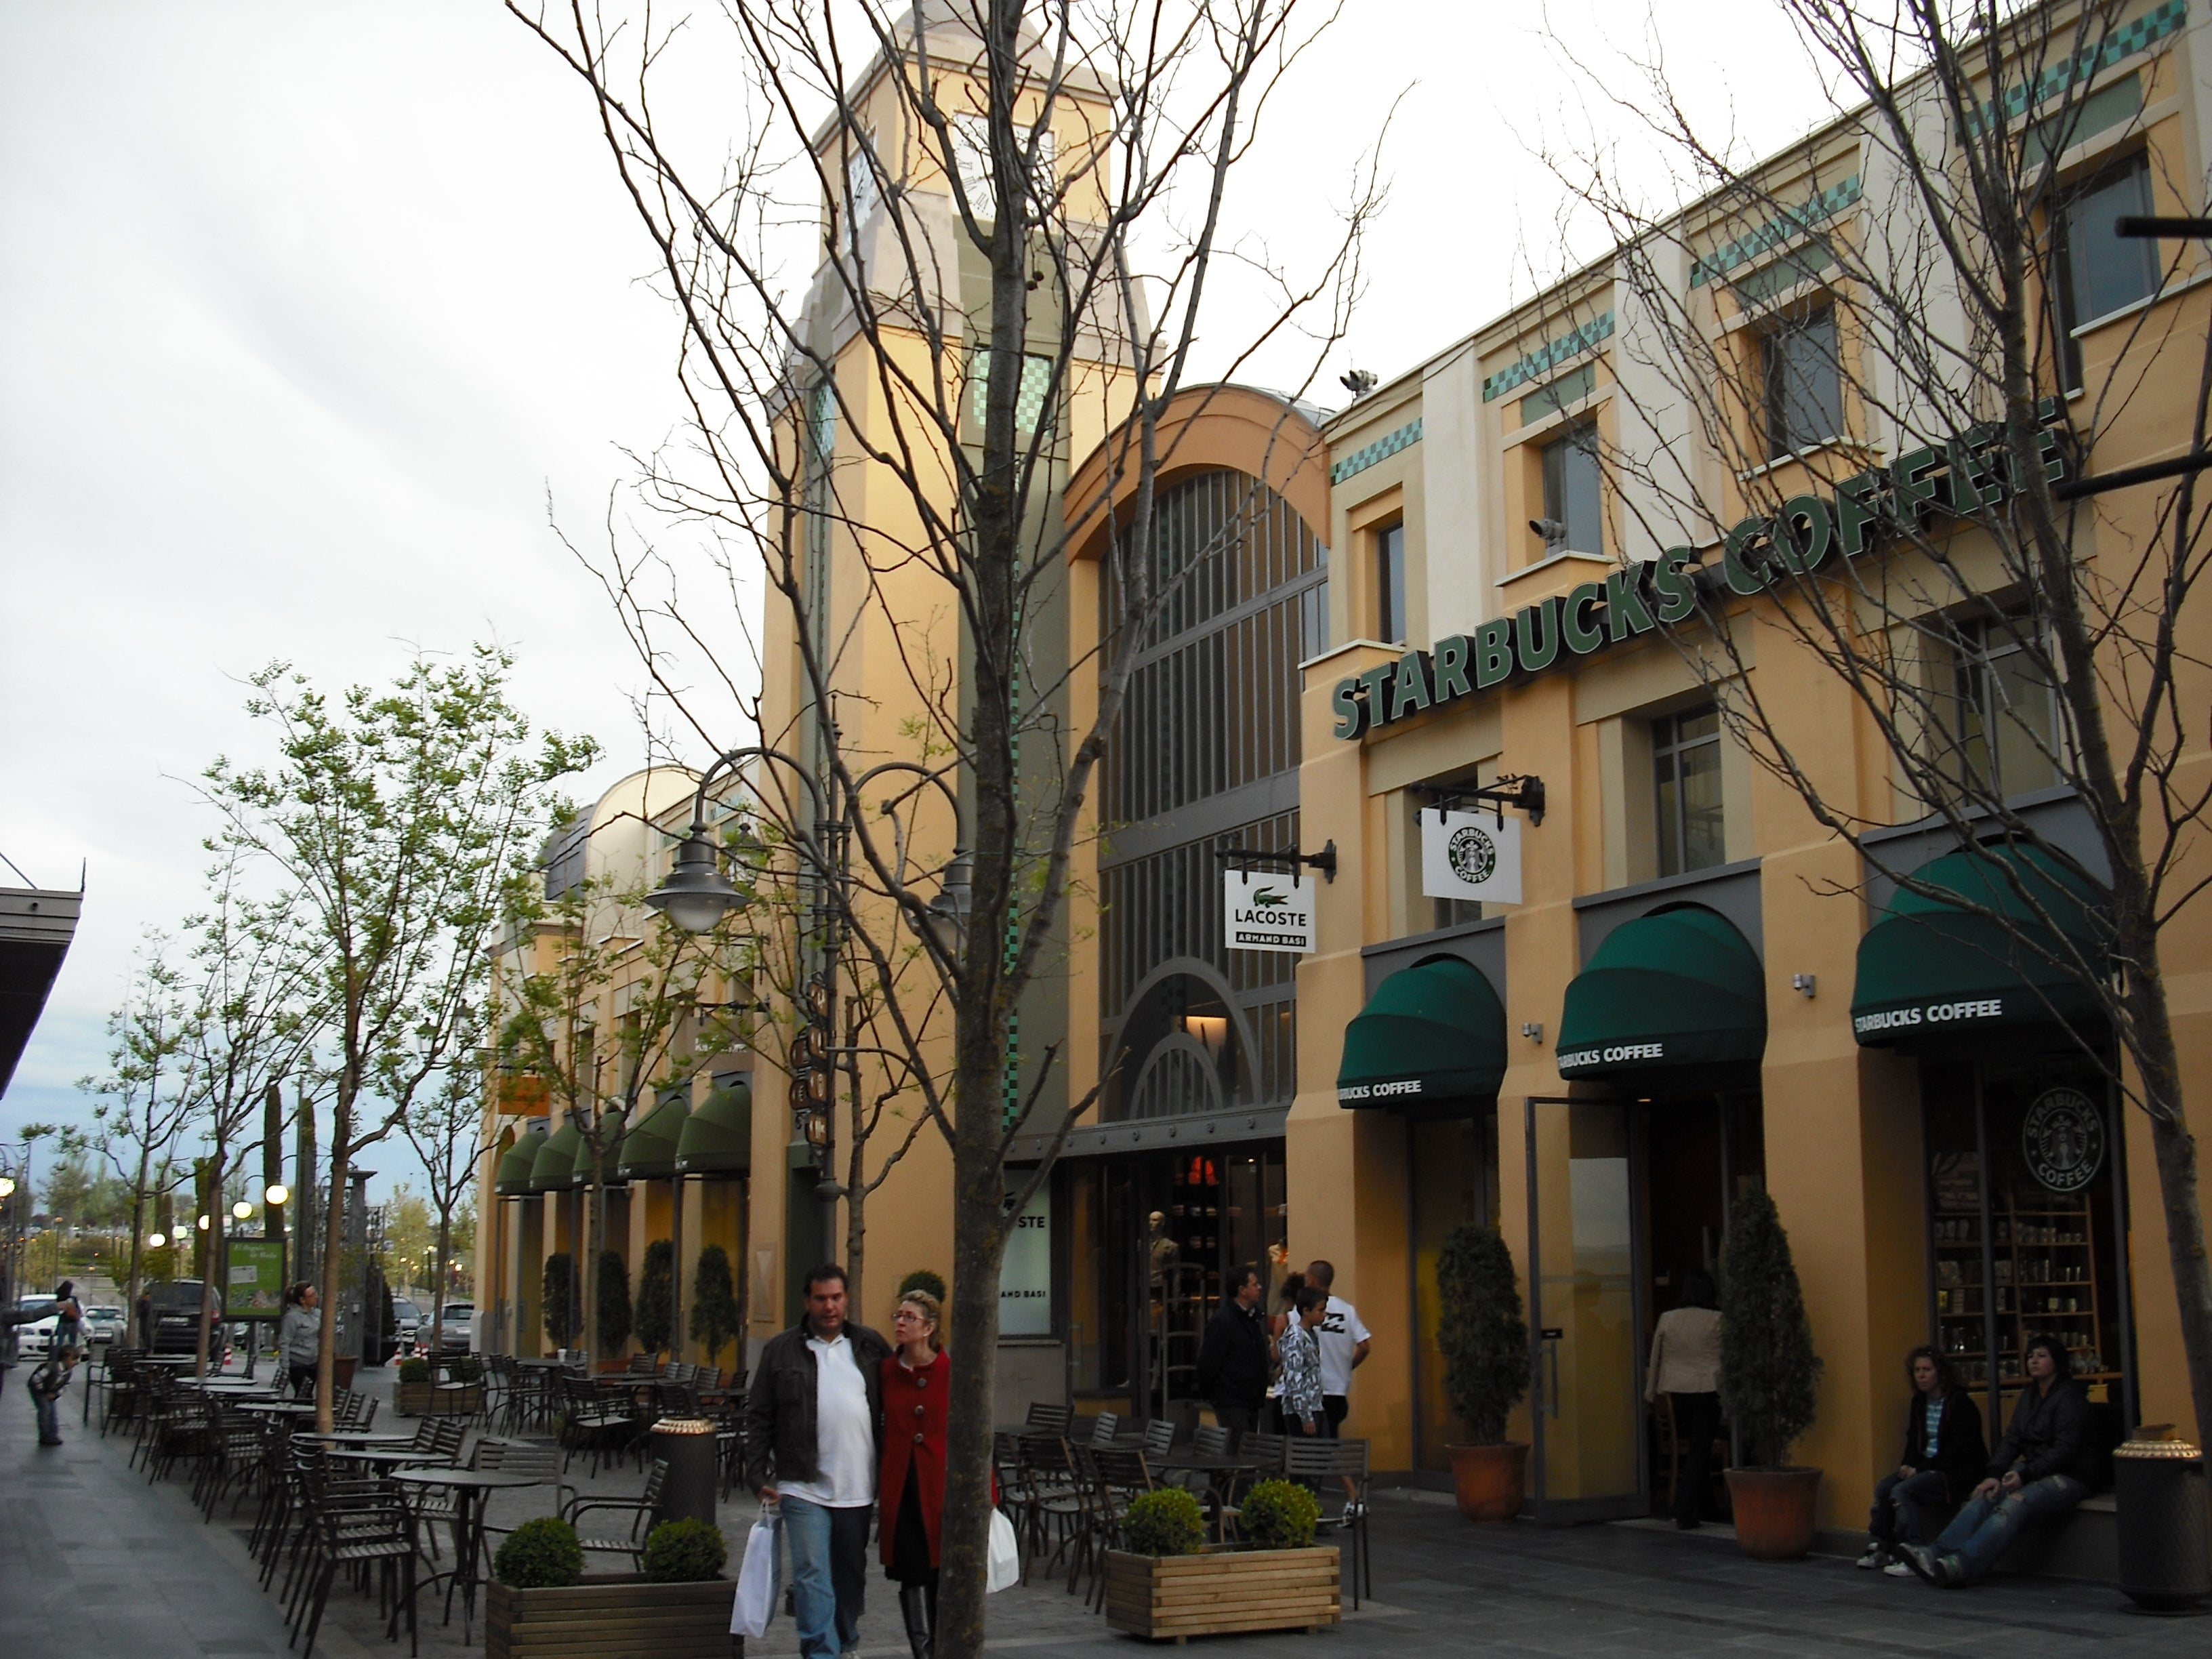 Arquitectura en Las Rozas Village outlet shopping